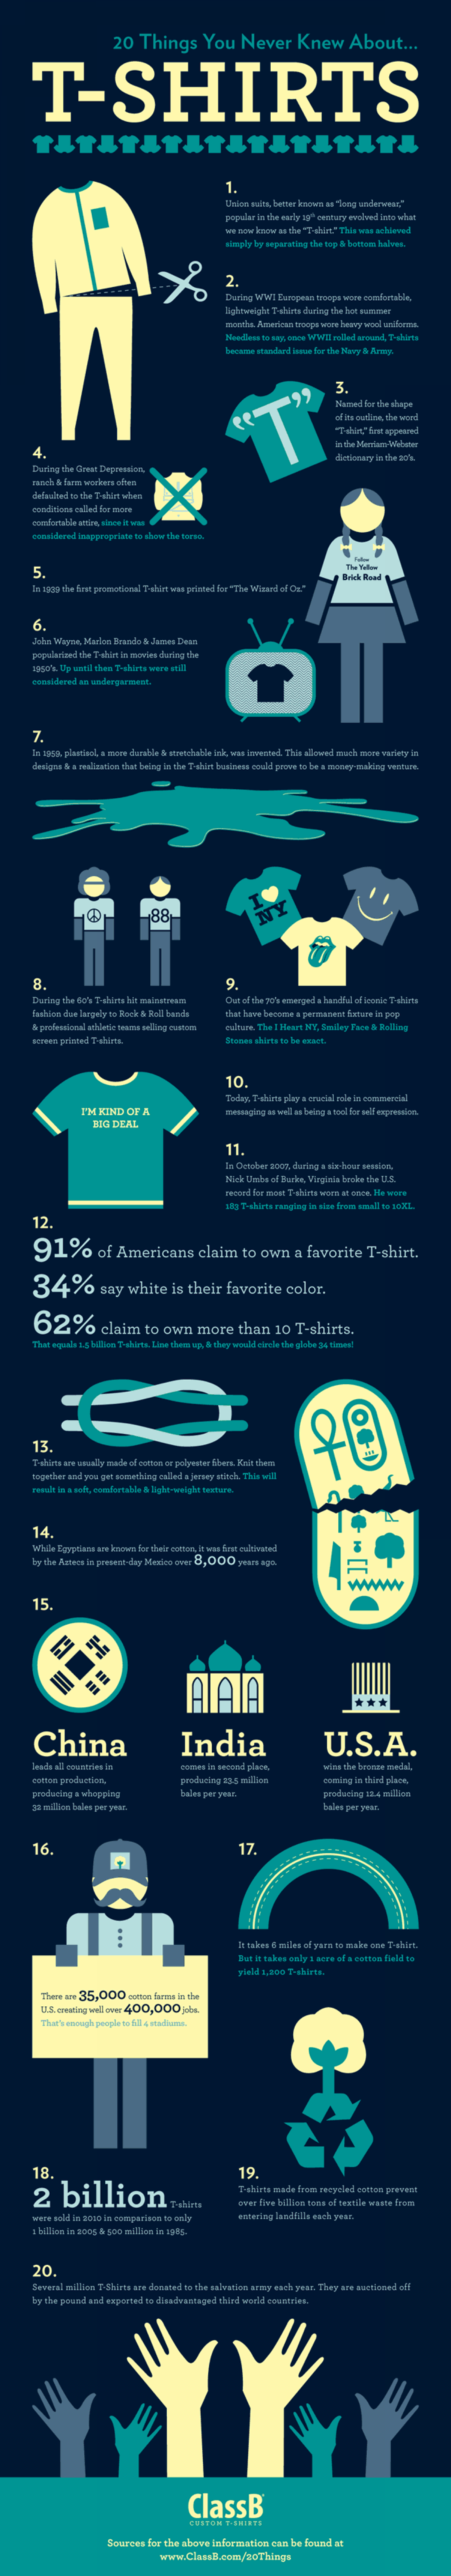 20 Things You Never Knew About T-shirts Infographic